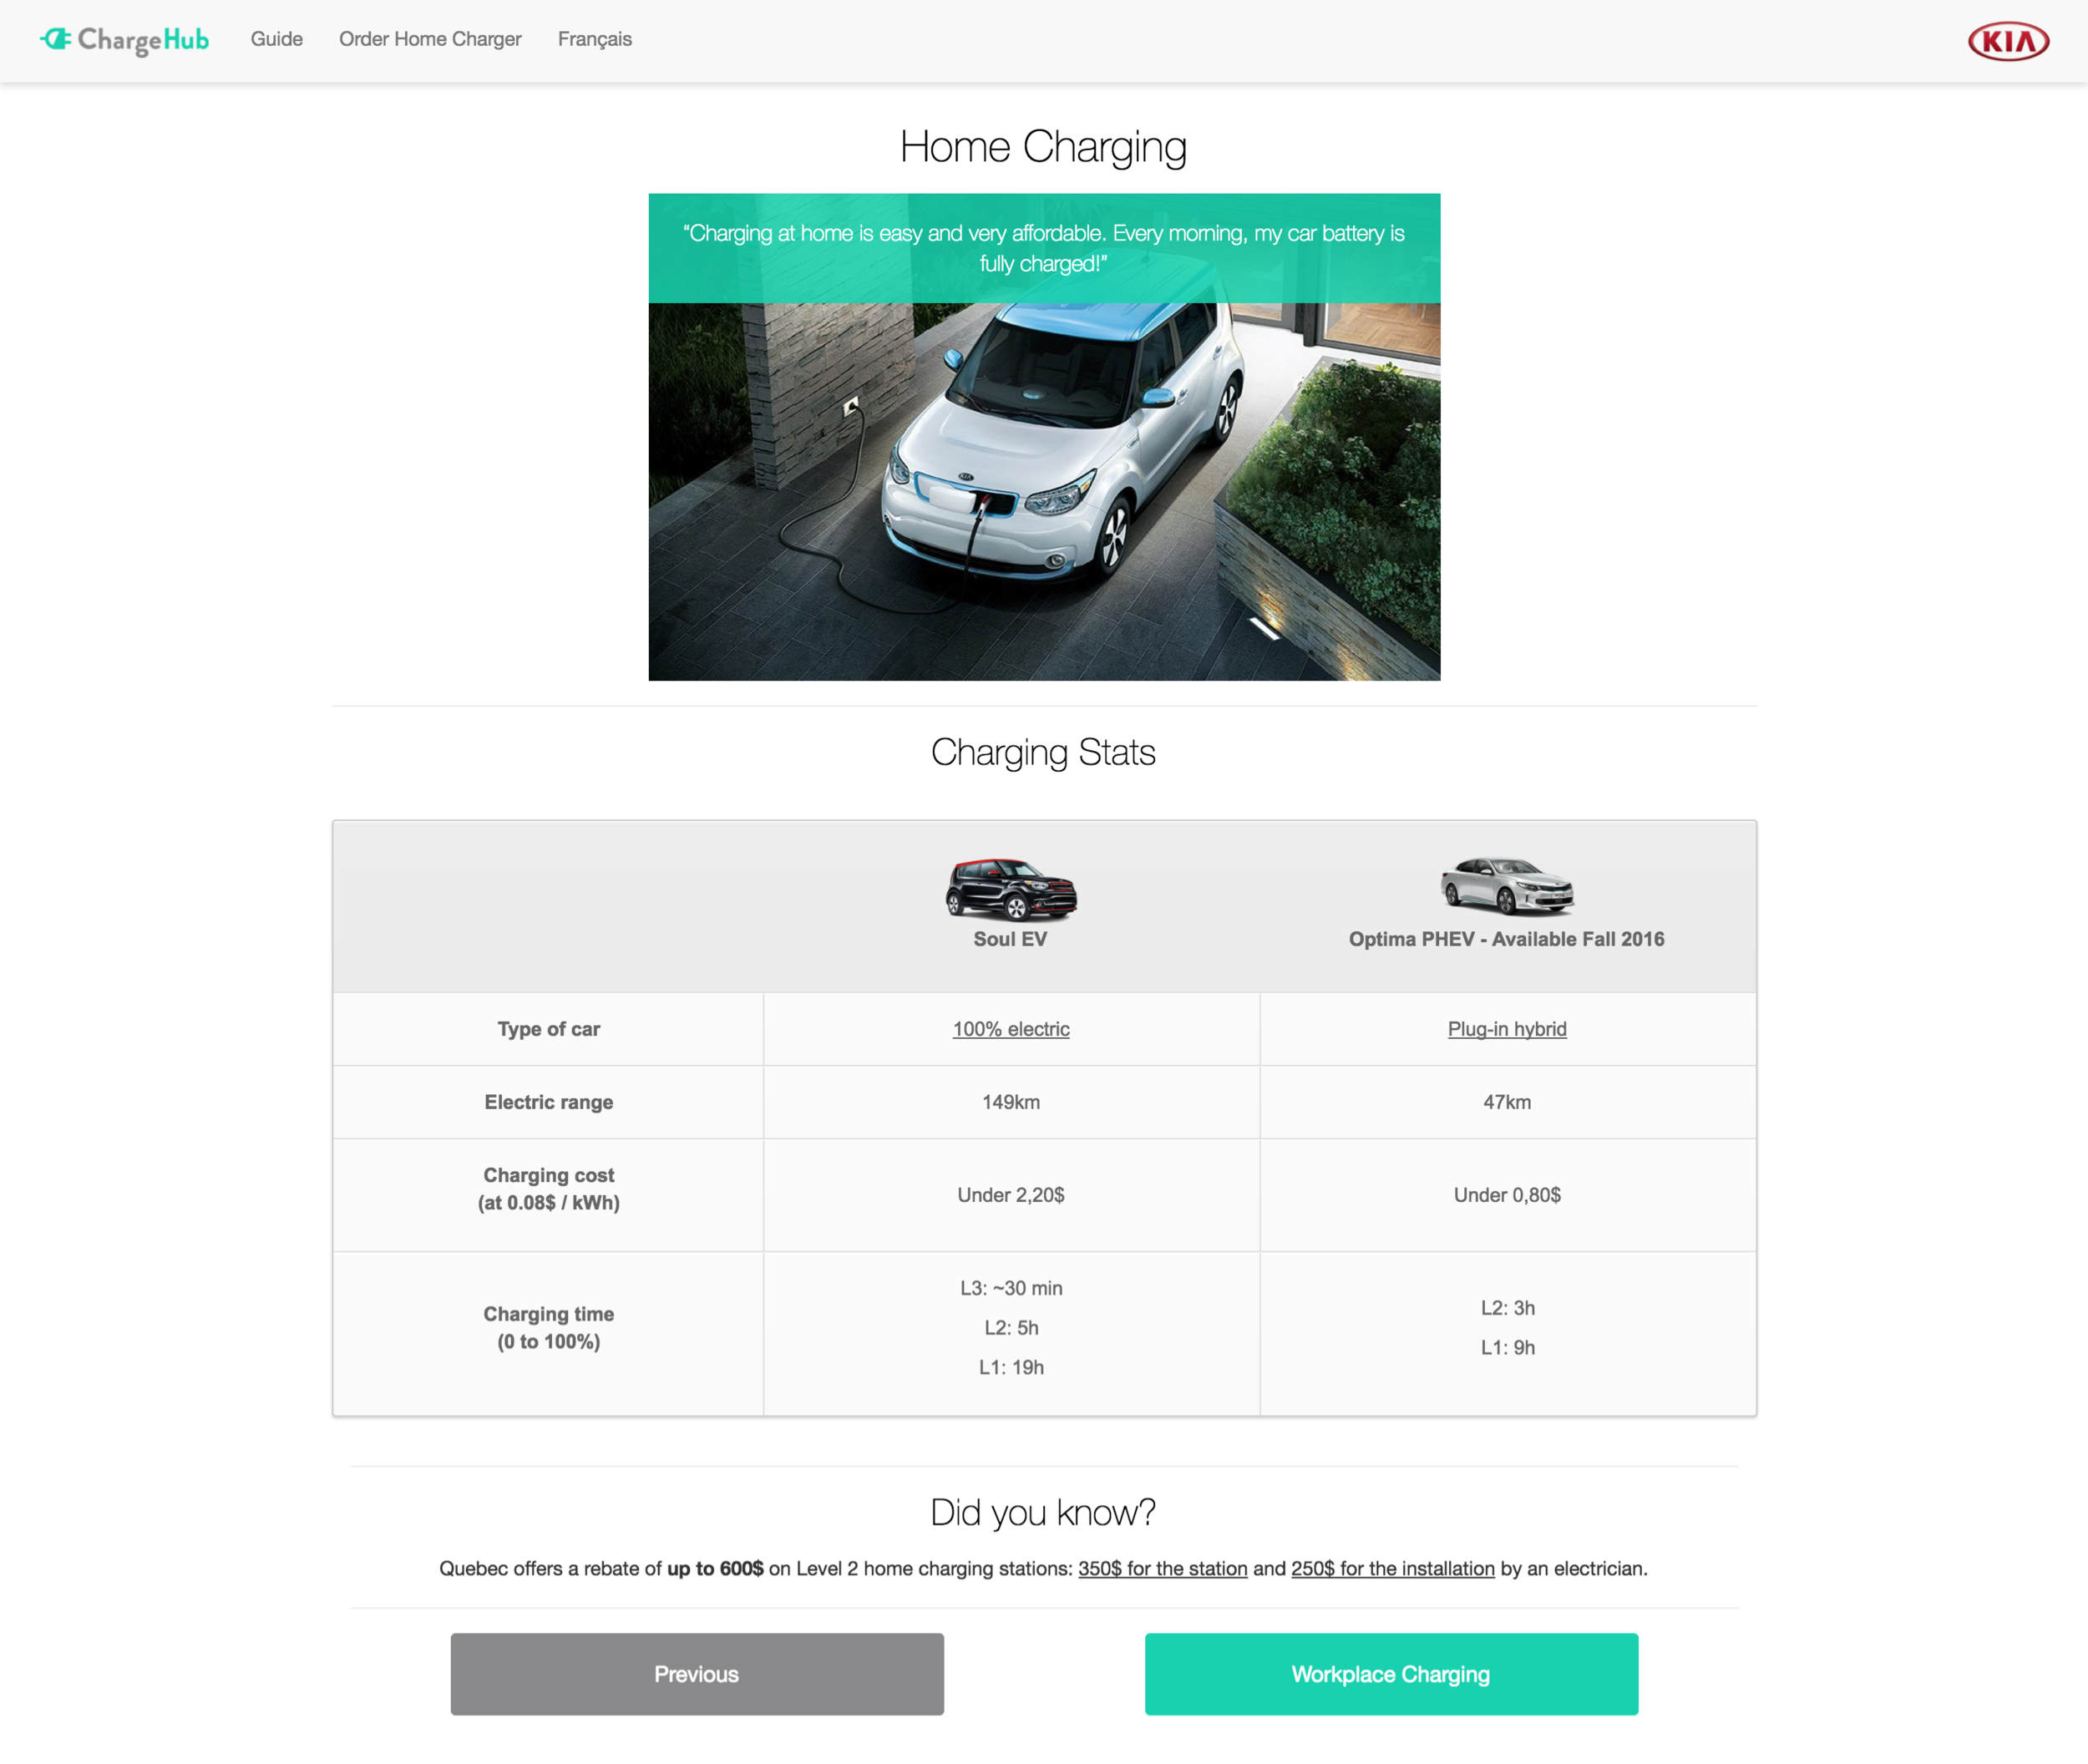 screencapture-kia-chargehub-en-qc-home-charging-html-1497282969837.png